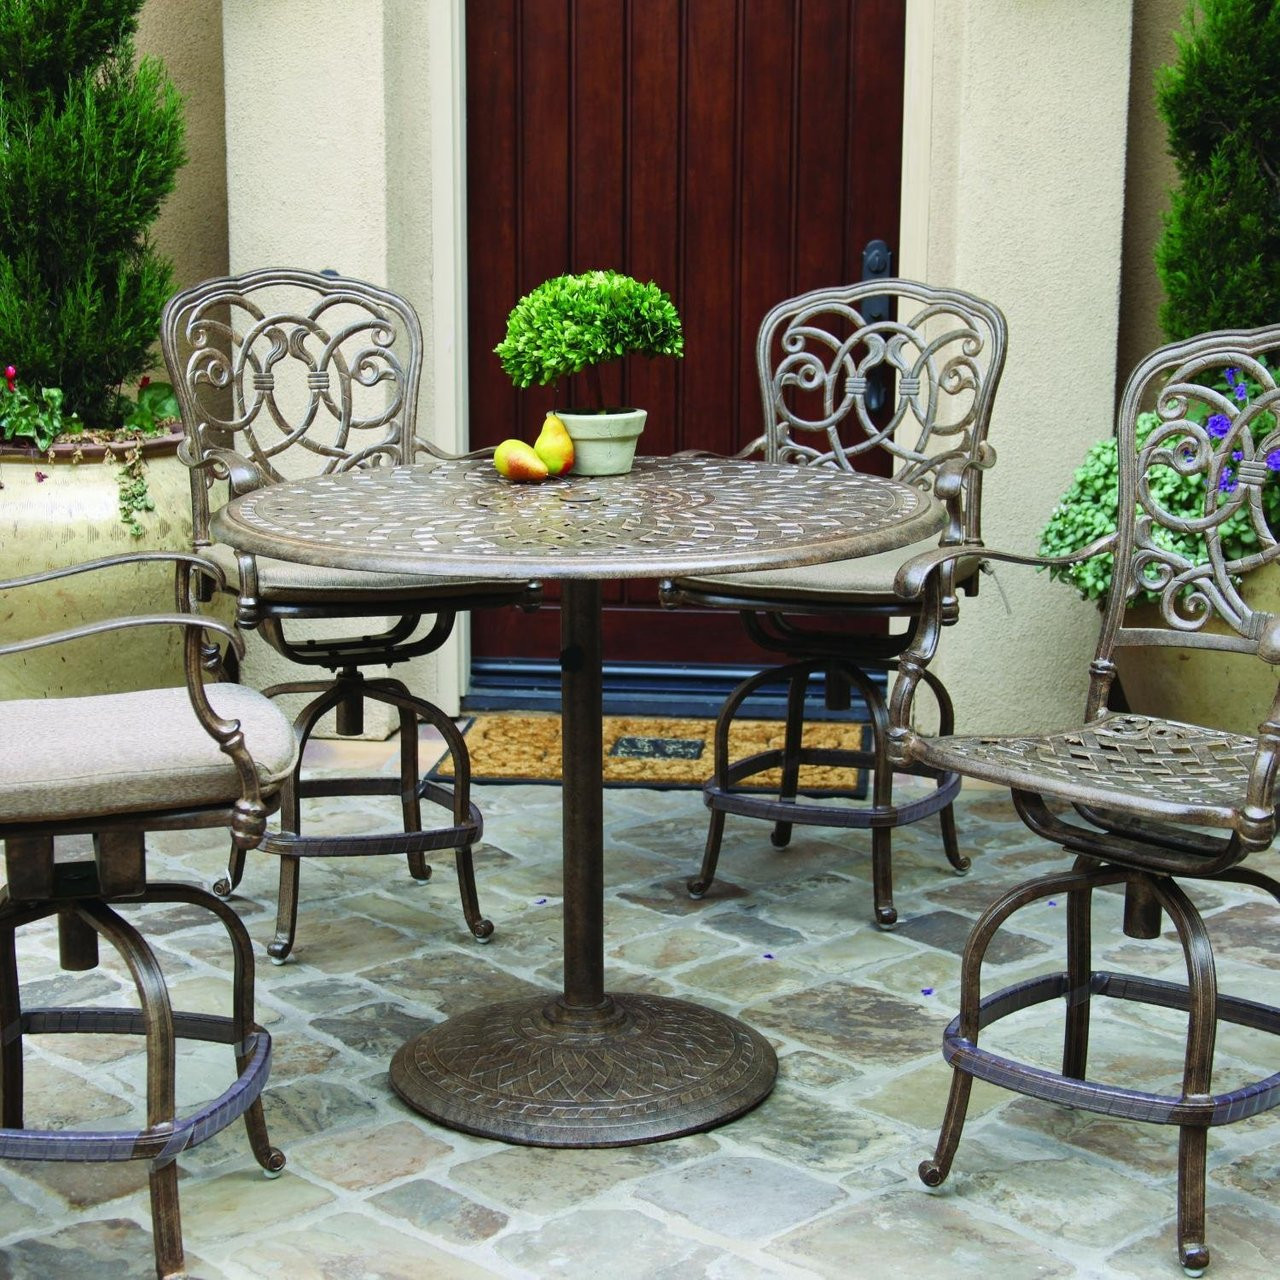 Picture of: Darlee Florence Patio Counter Height Bar Set Antique Bronze Seats 4 San Diego Spa Patio